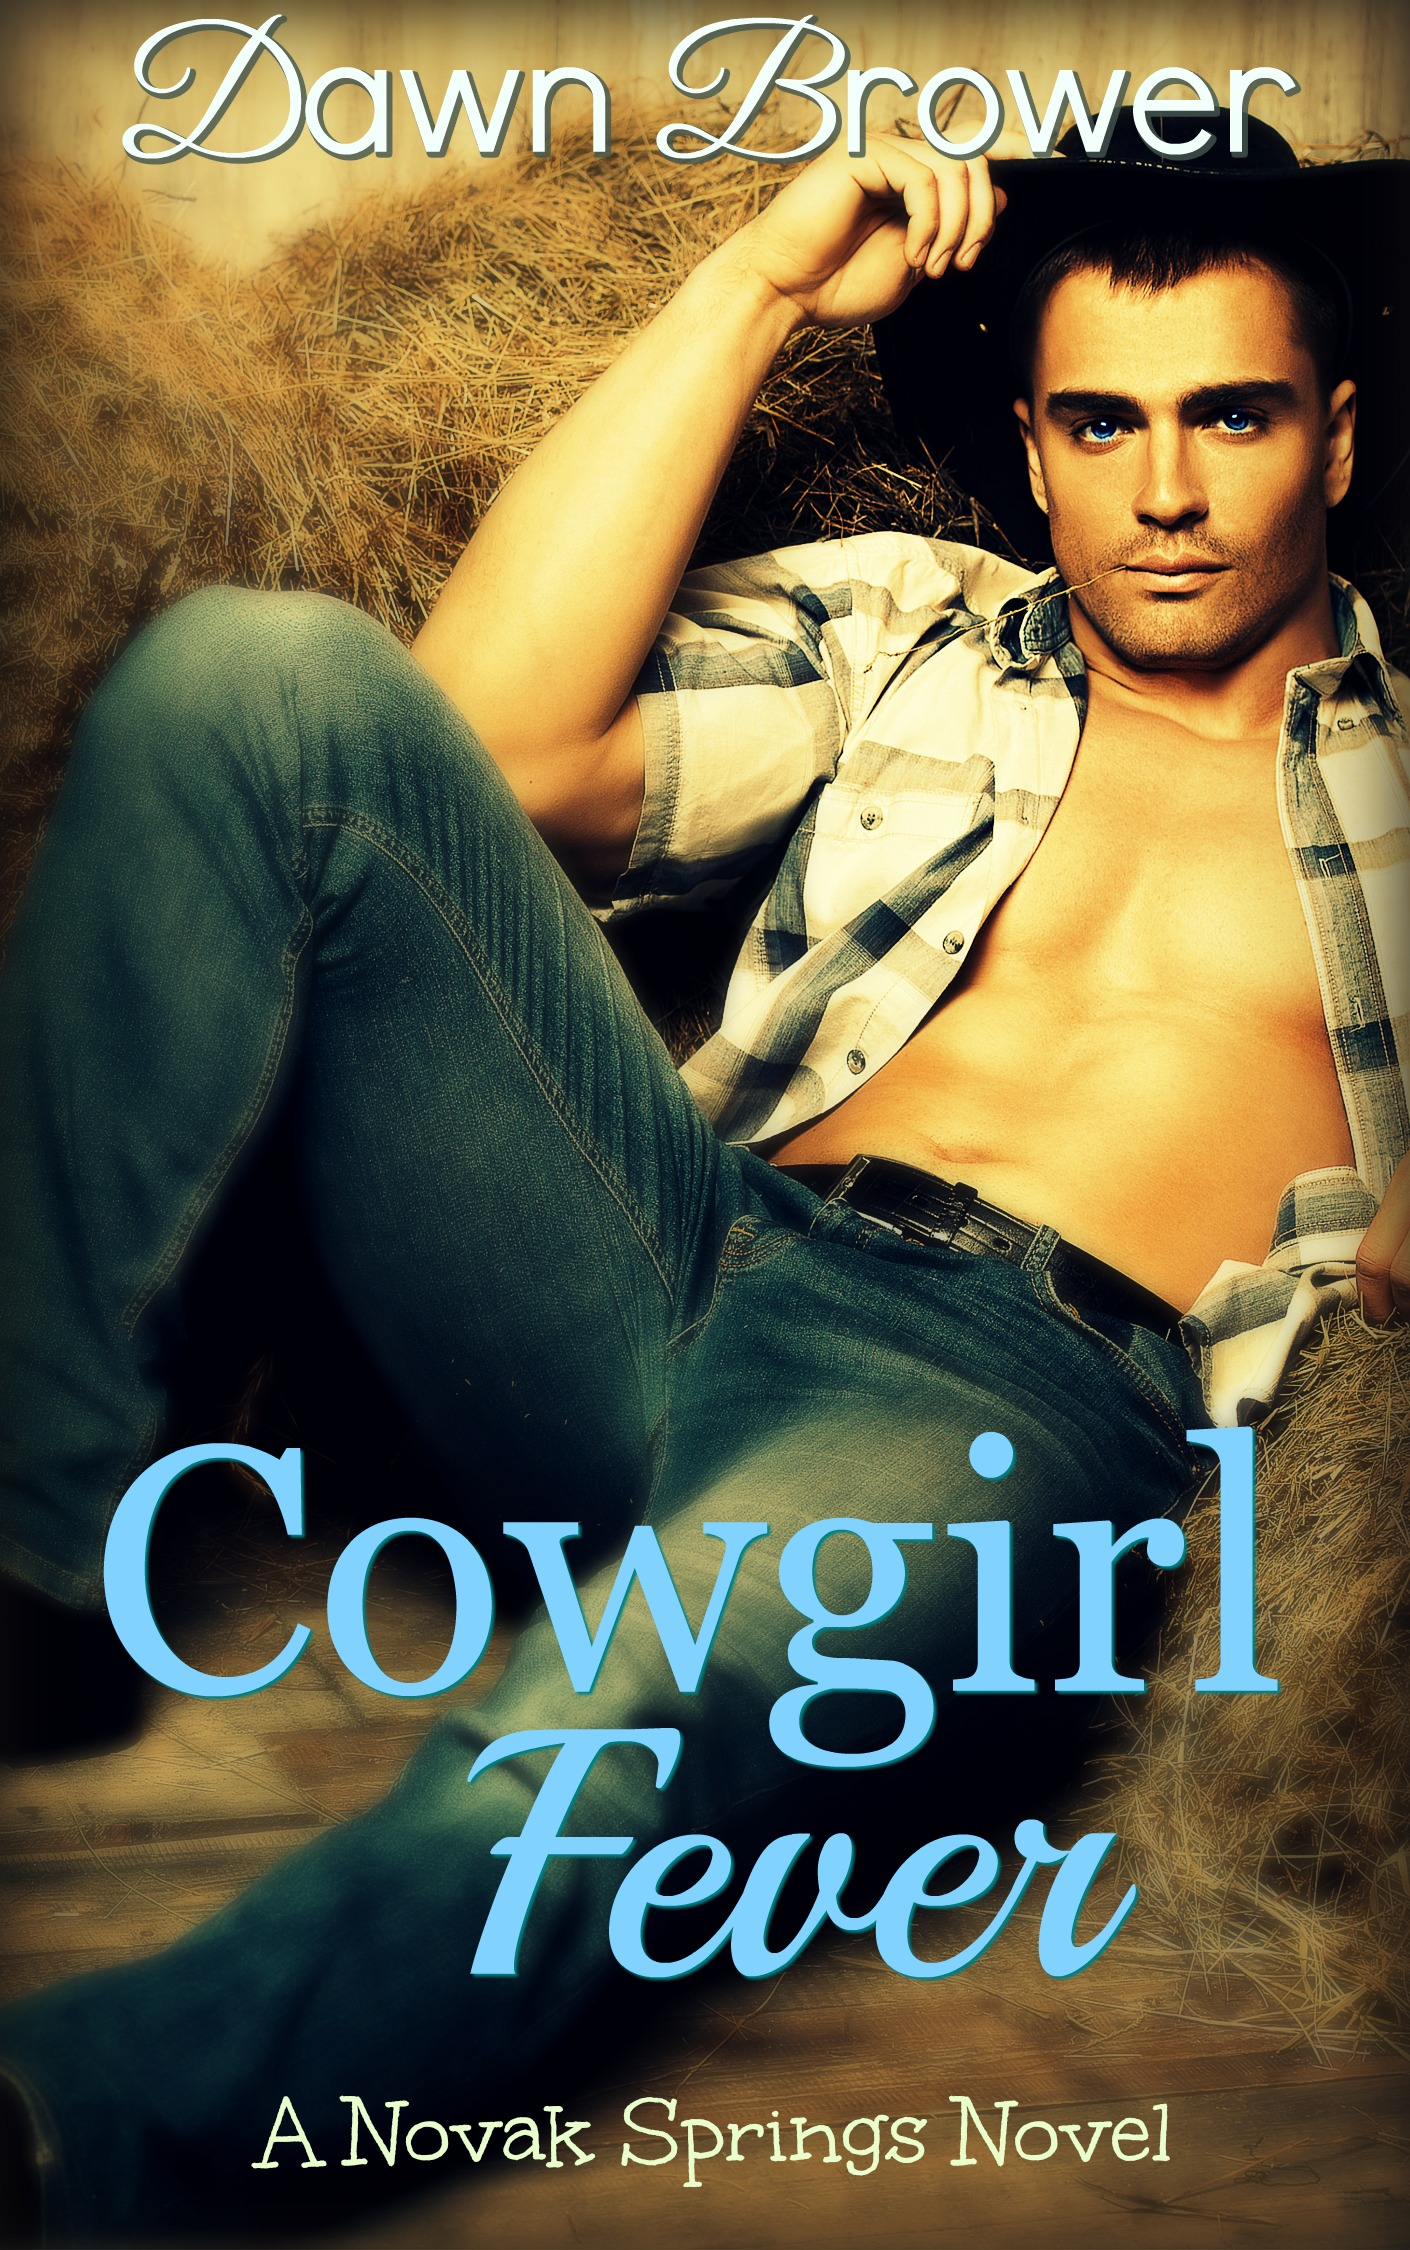 Cowgirl fever